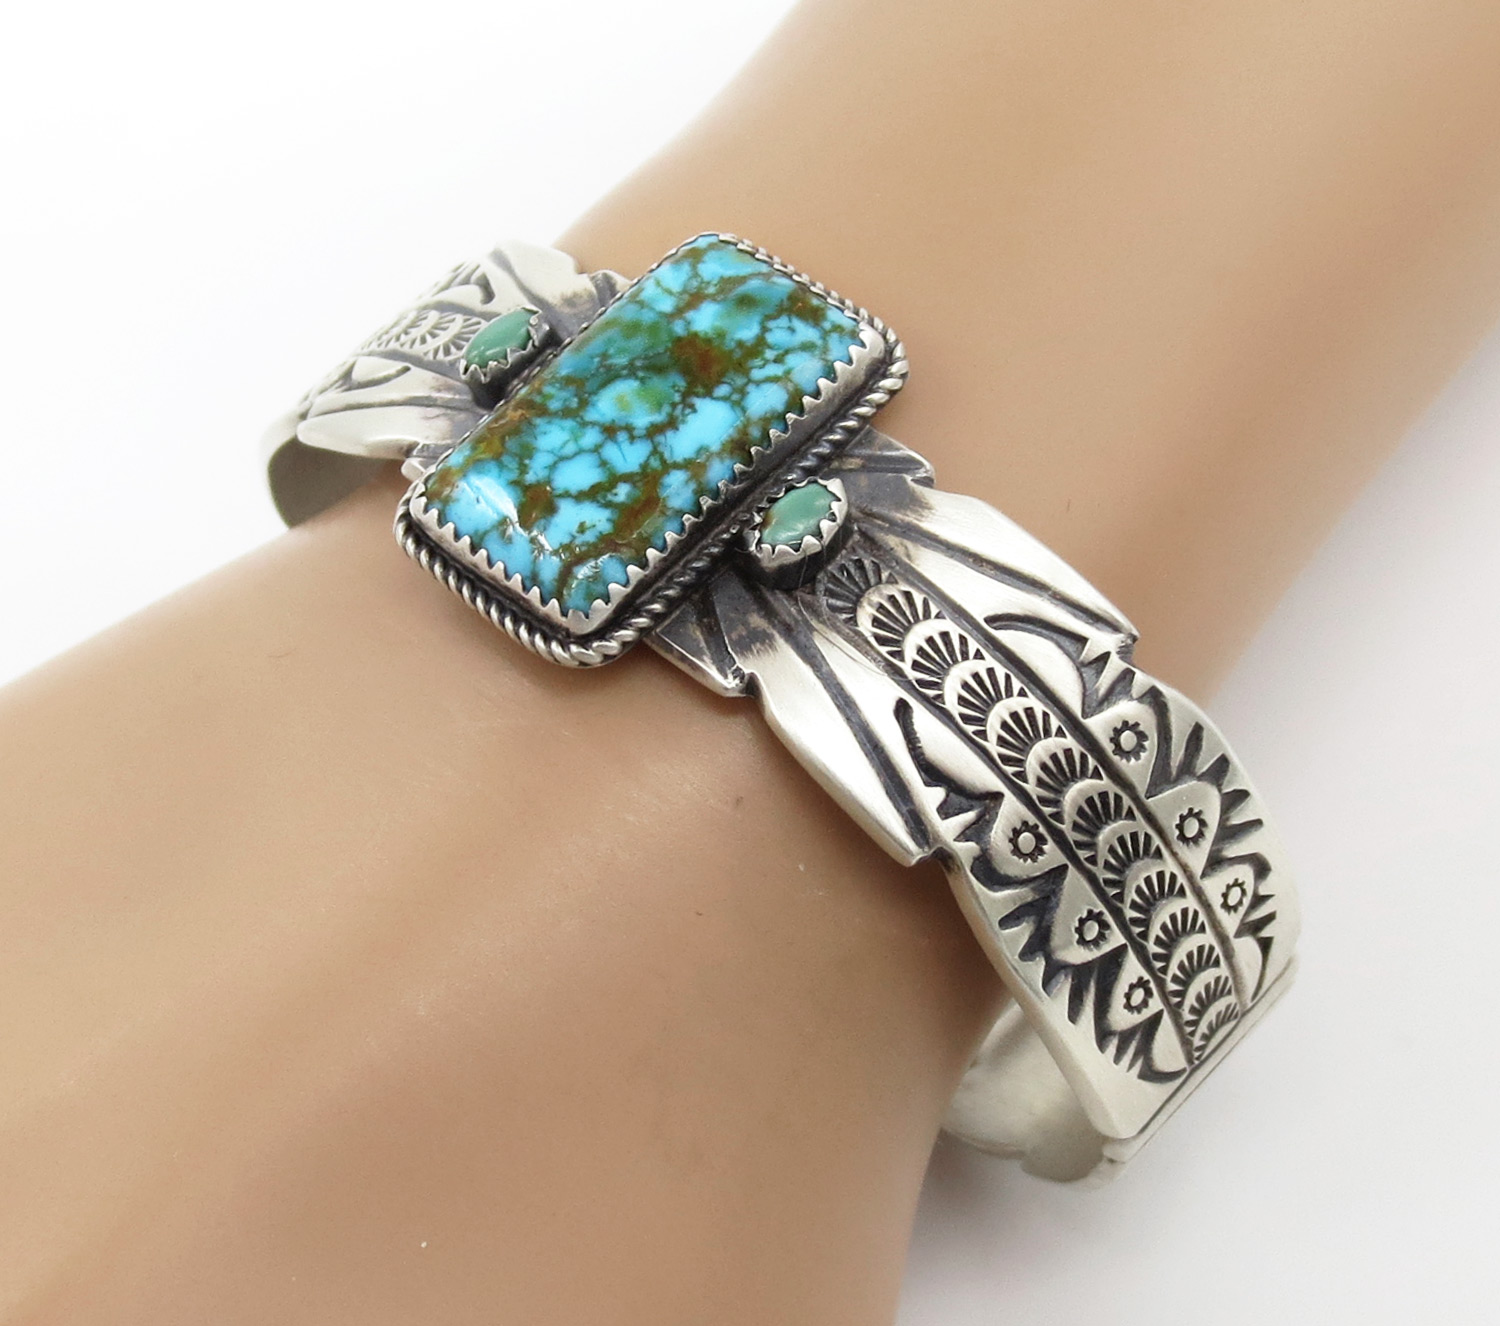 Image 0 of   Large Turquoise & Sterling Silver Bracelet Native American Jewelry - 2130dt